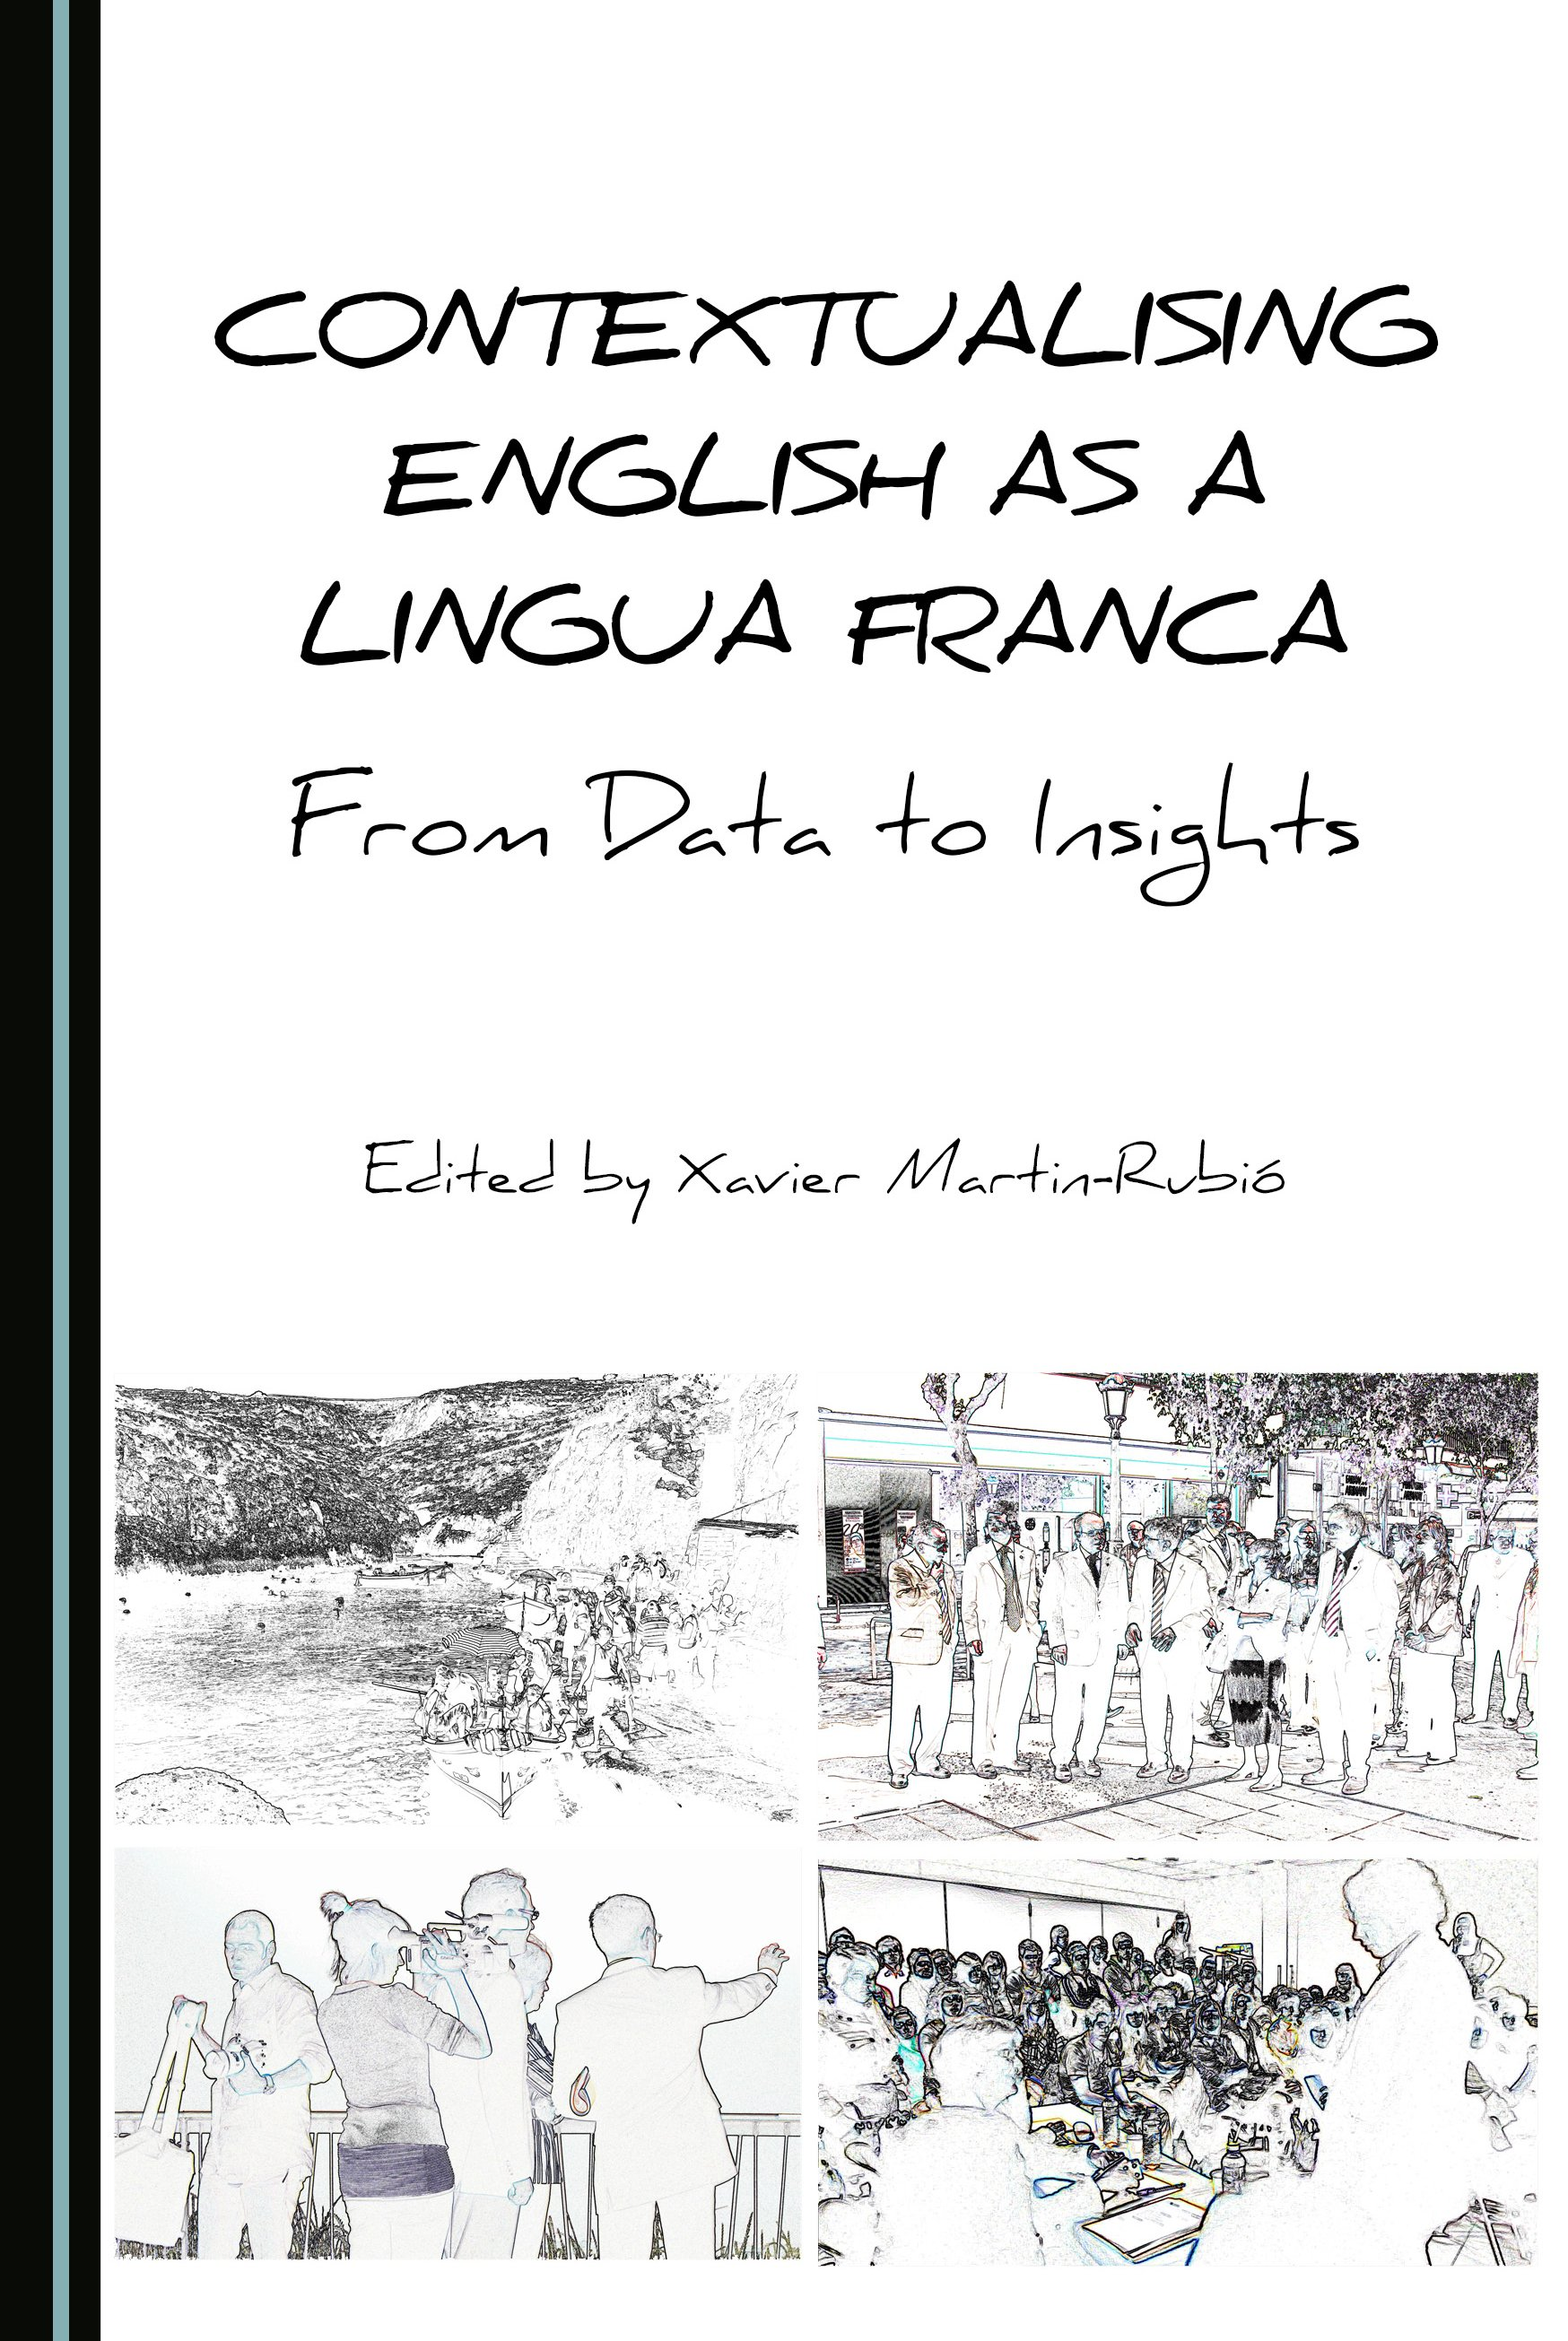 Contextualising English as a Lingua Franca: From Data to Insights